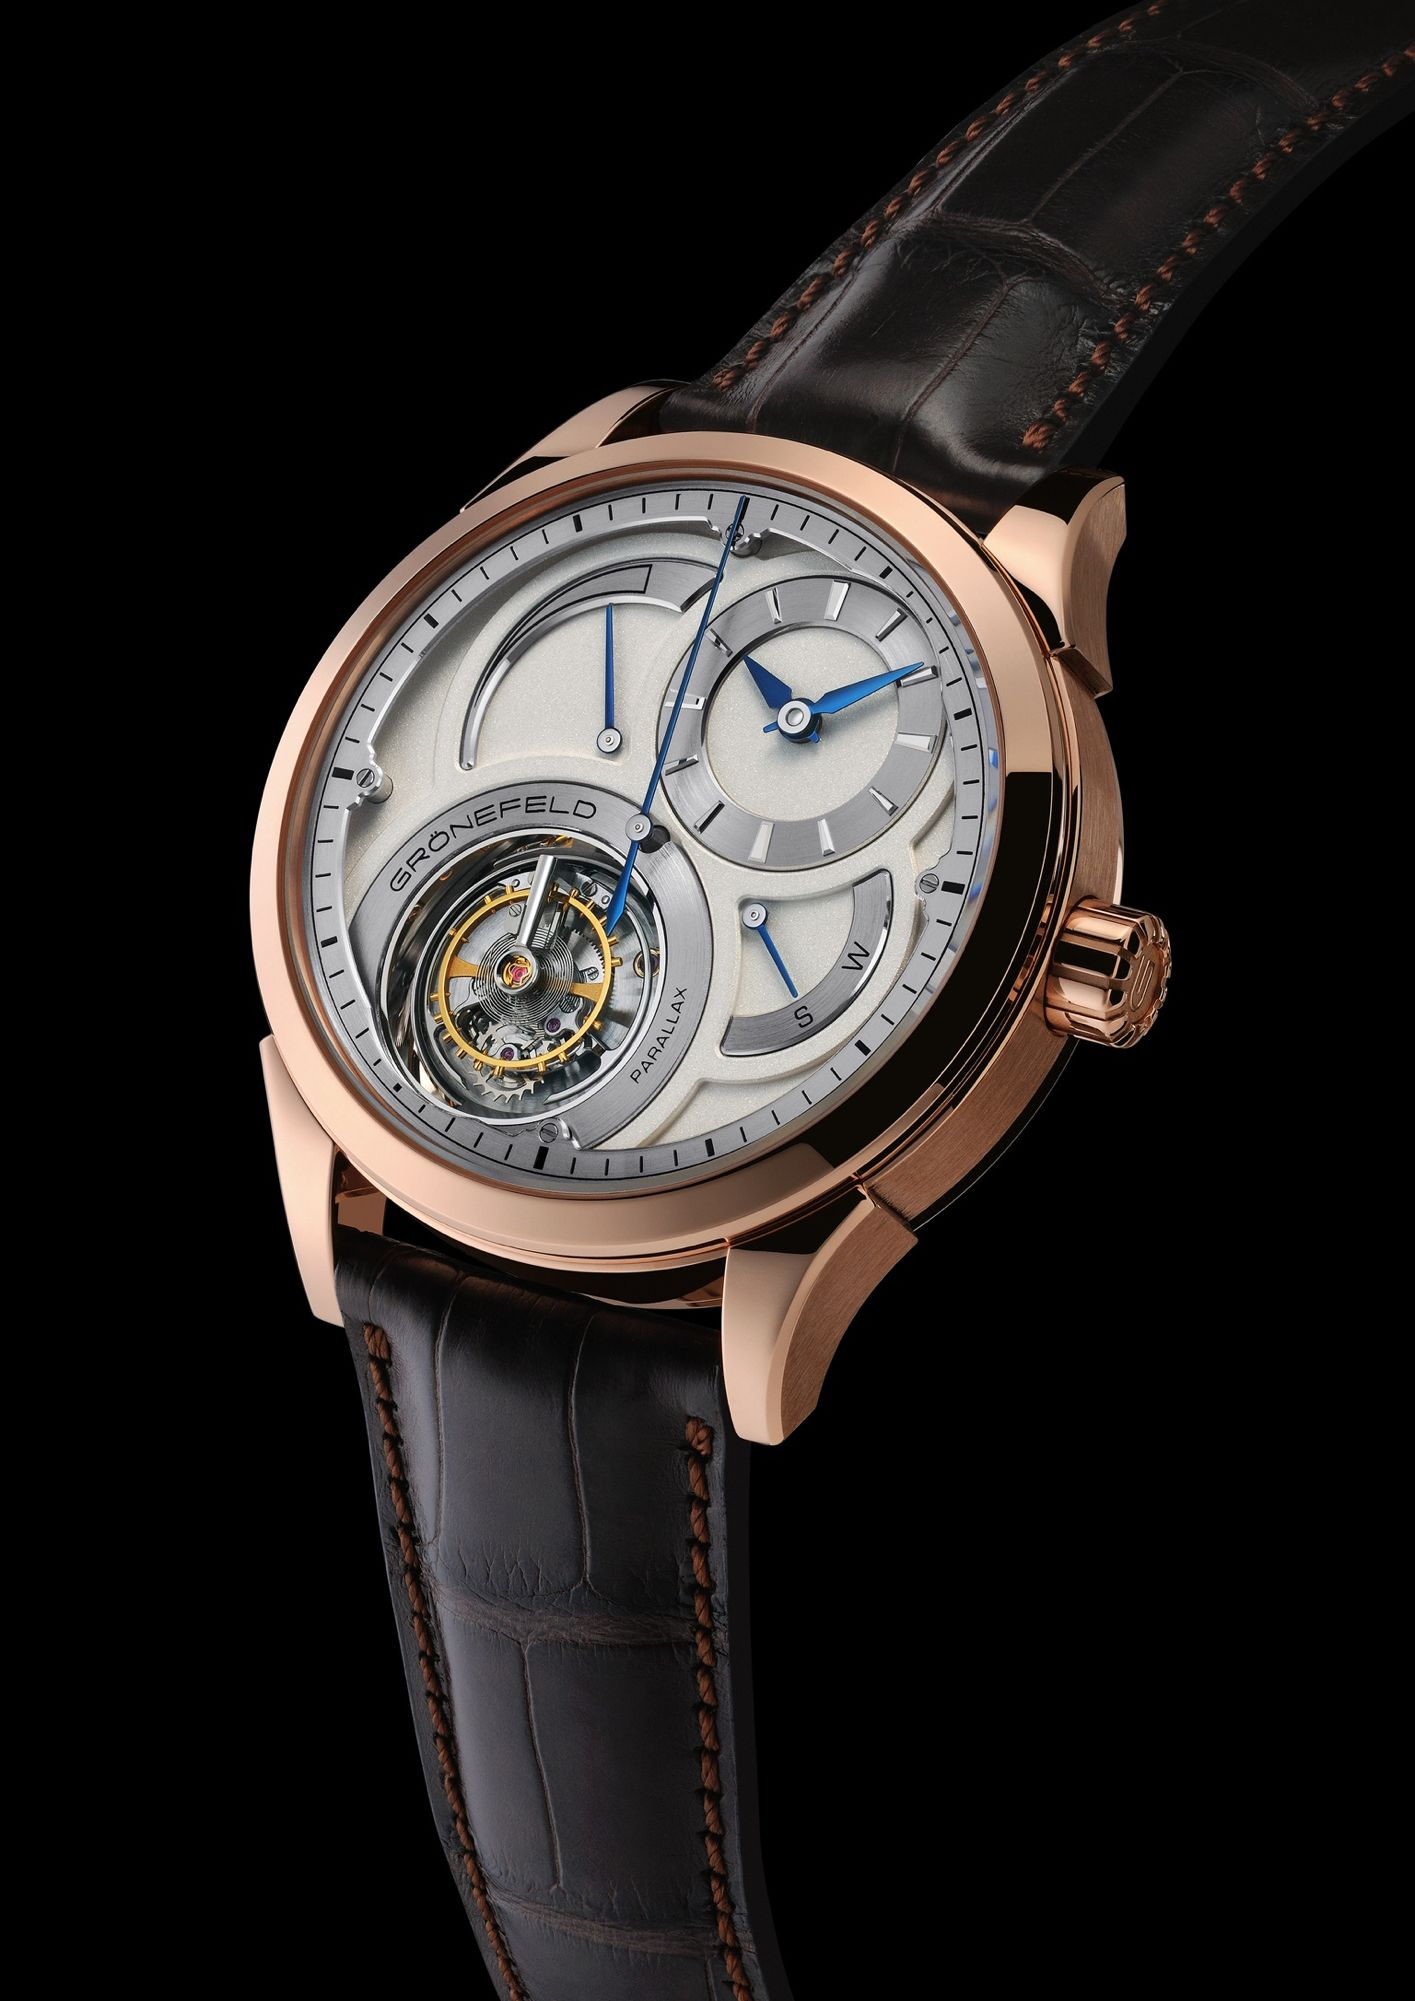 Gronefeld Parallax Rg Tourbillon In Red Gold 5n Limited In 28 Pieces For More Info Www Gronefeld Com Saatler